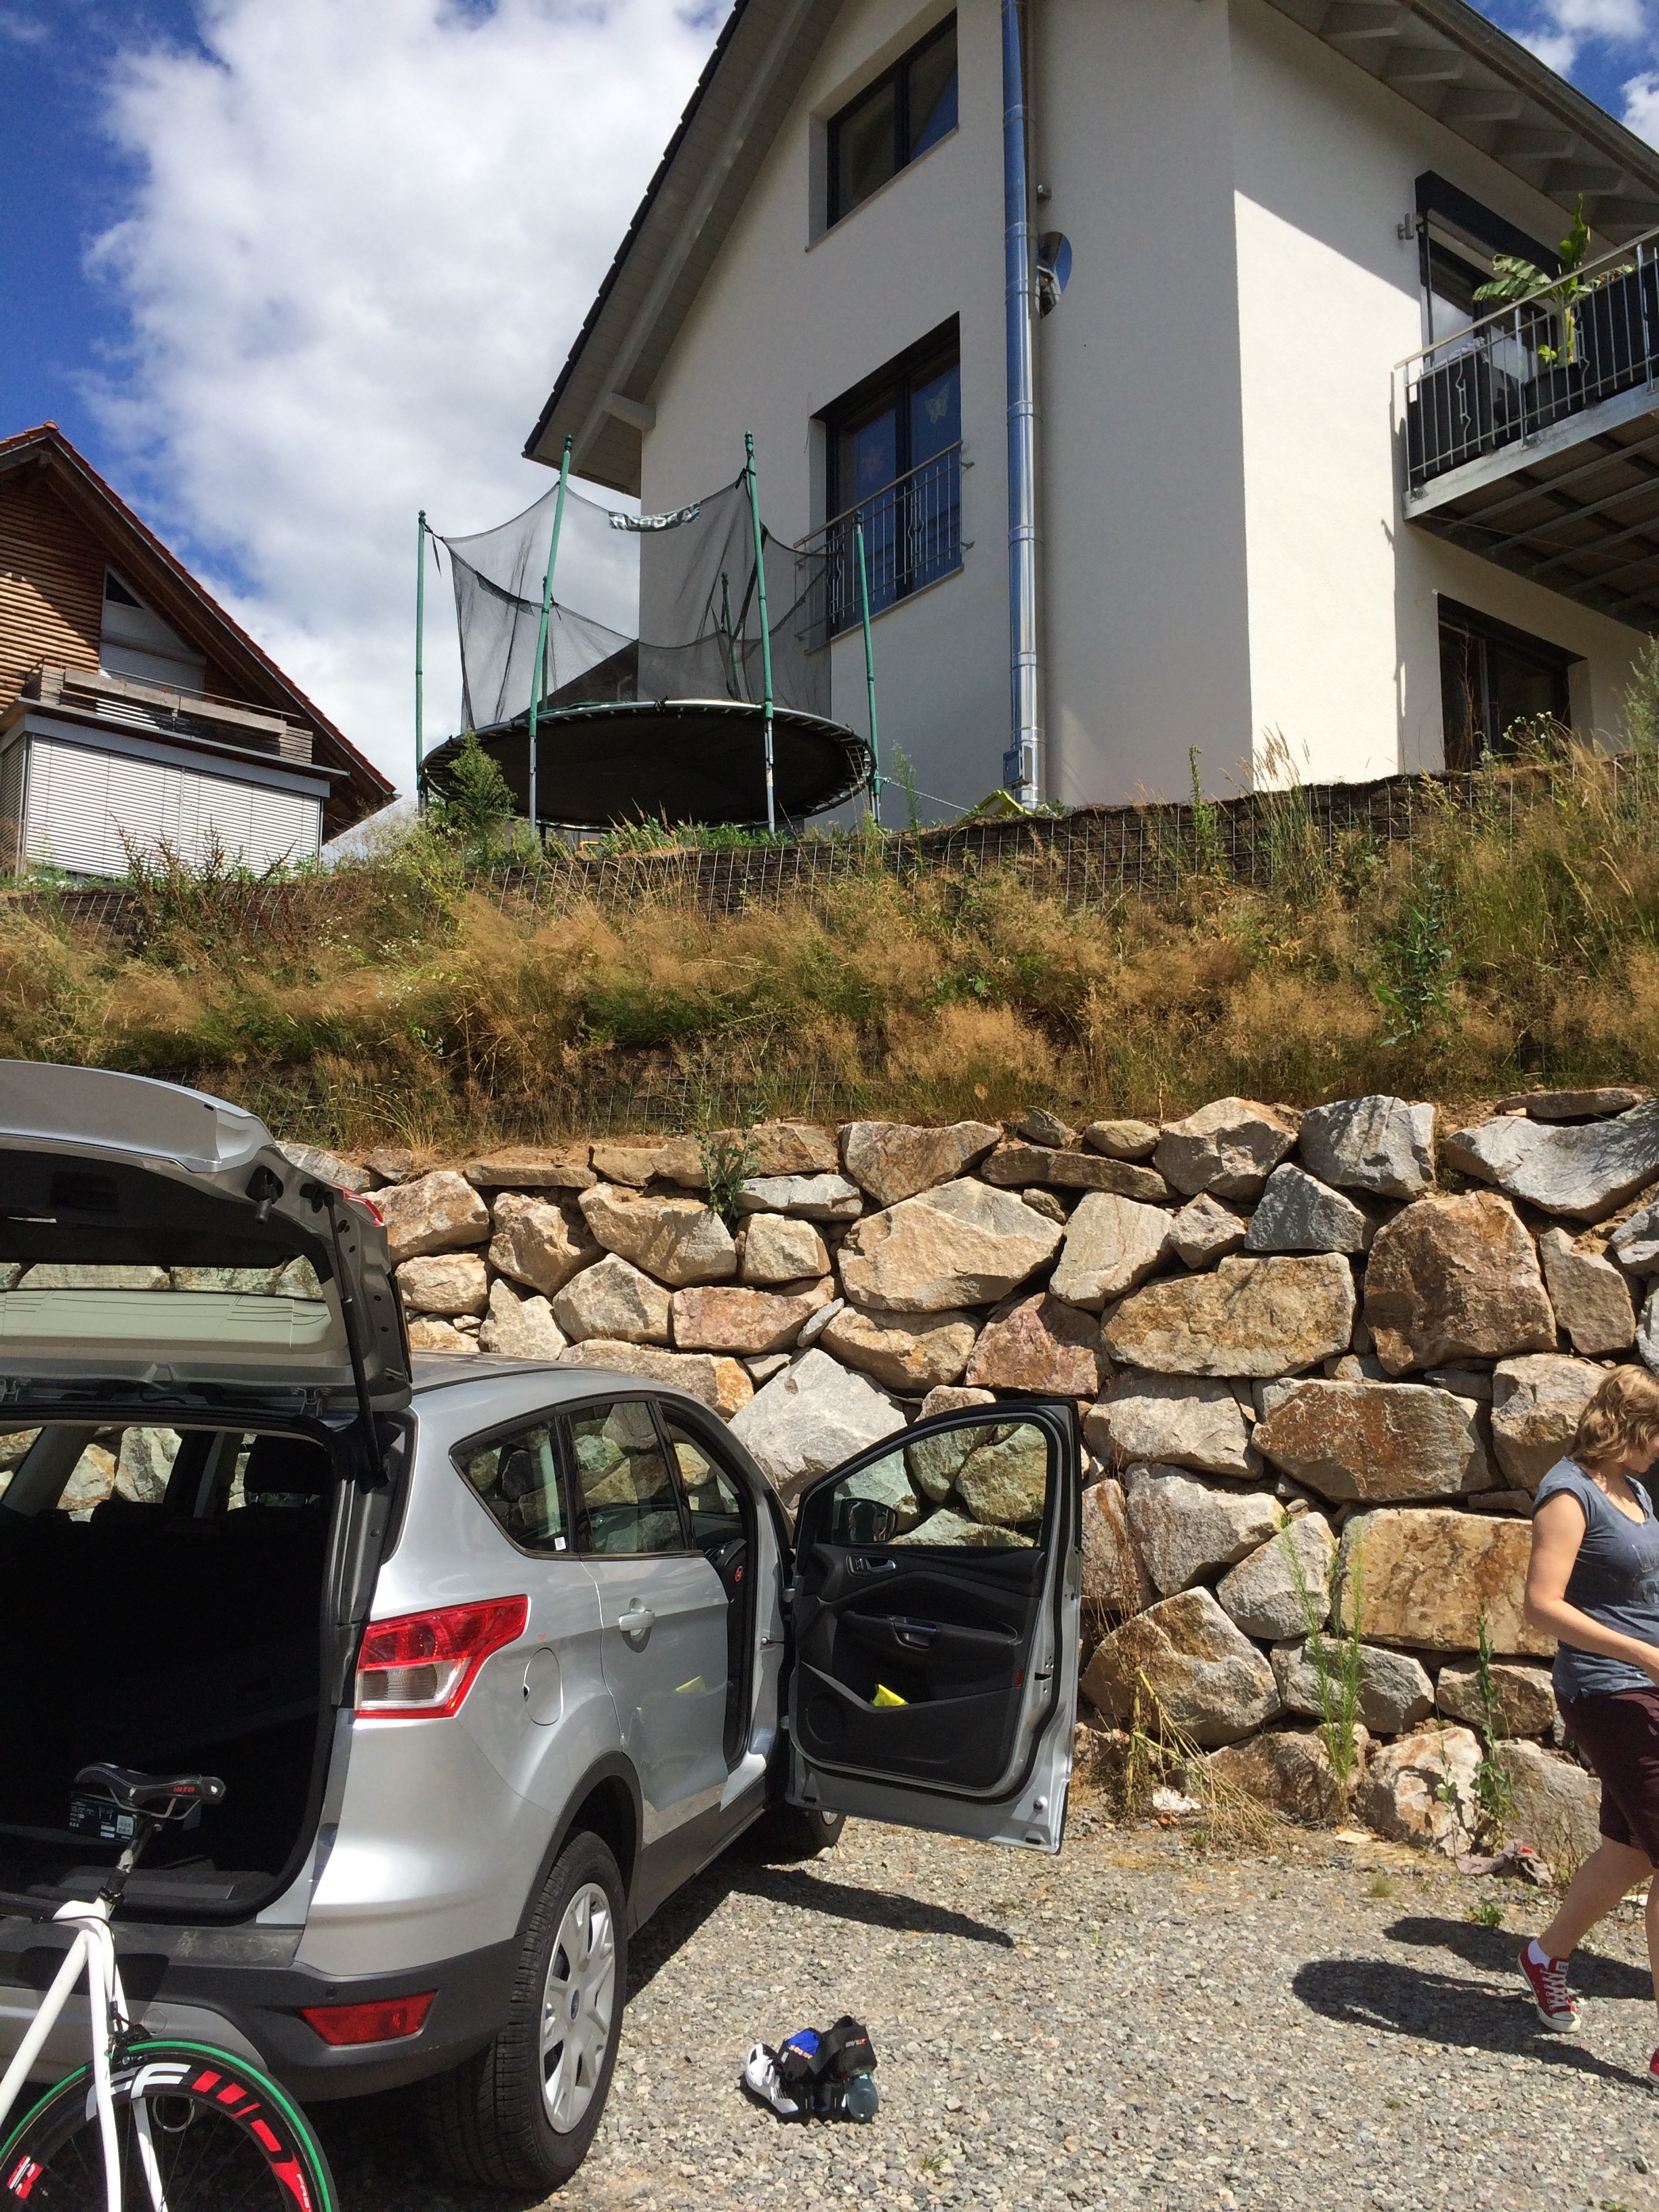 The crime scene in Elzach where the kids toys did our rental car in!